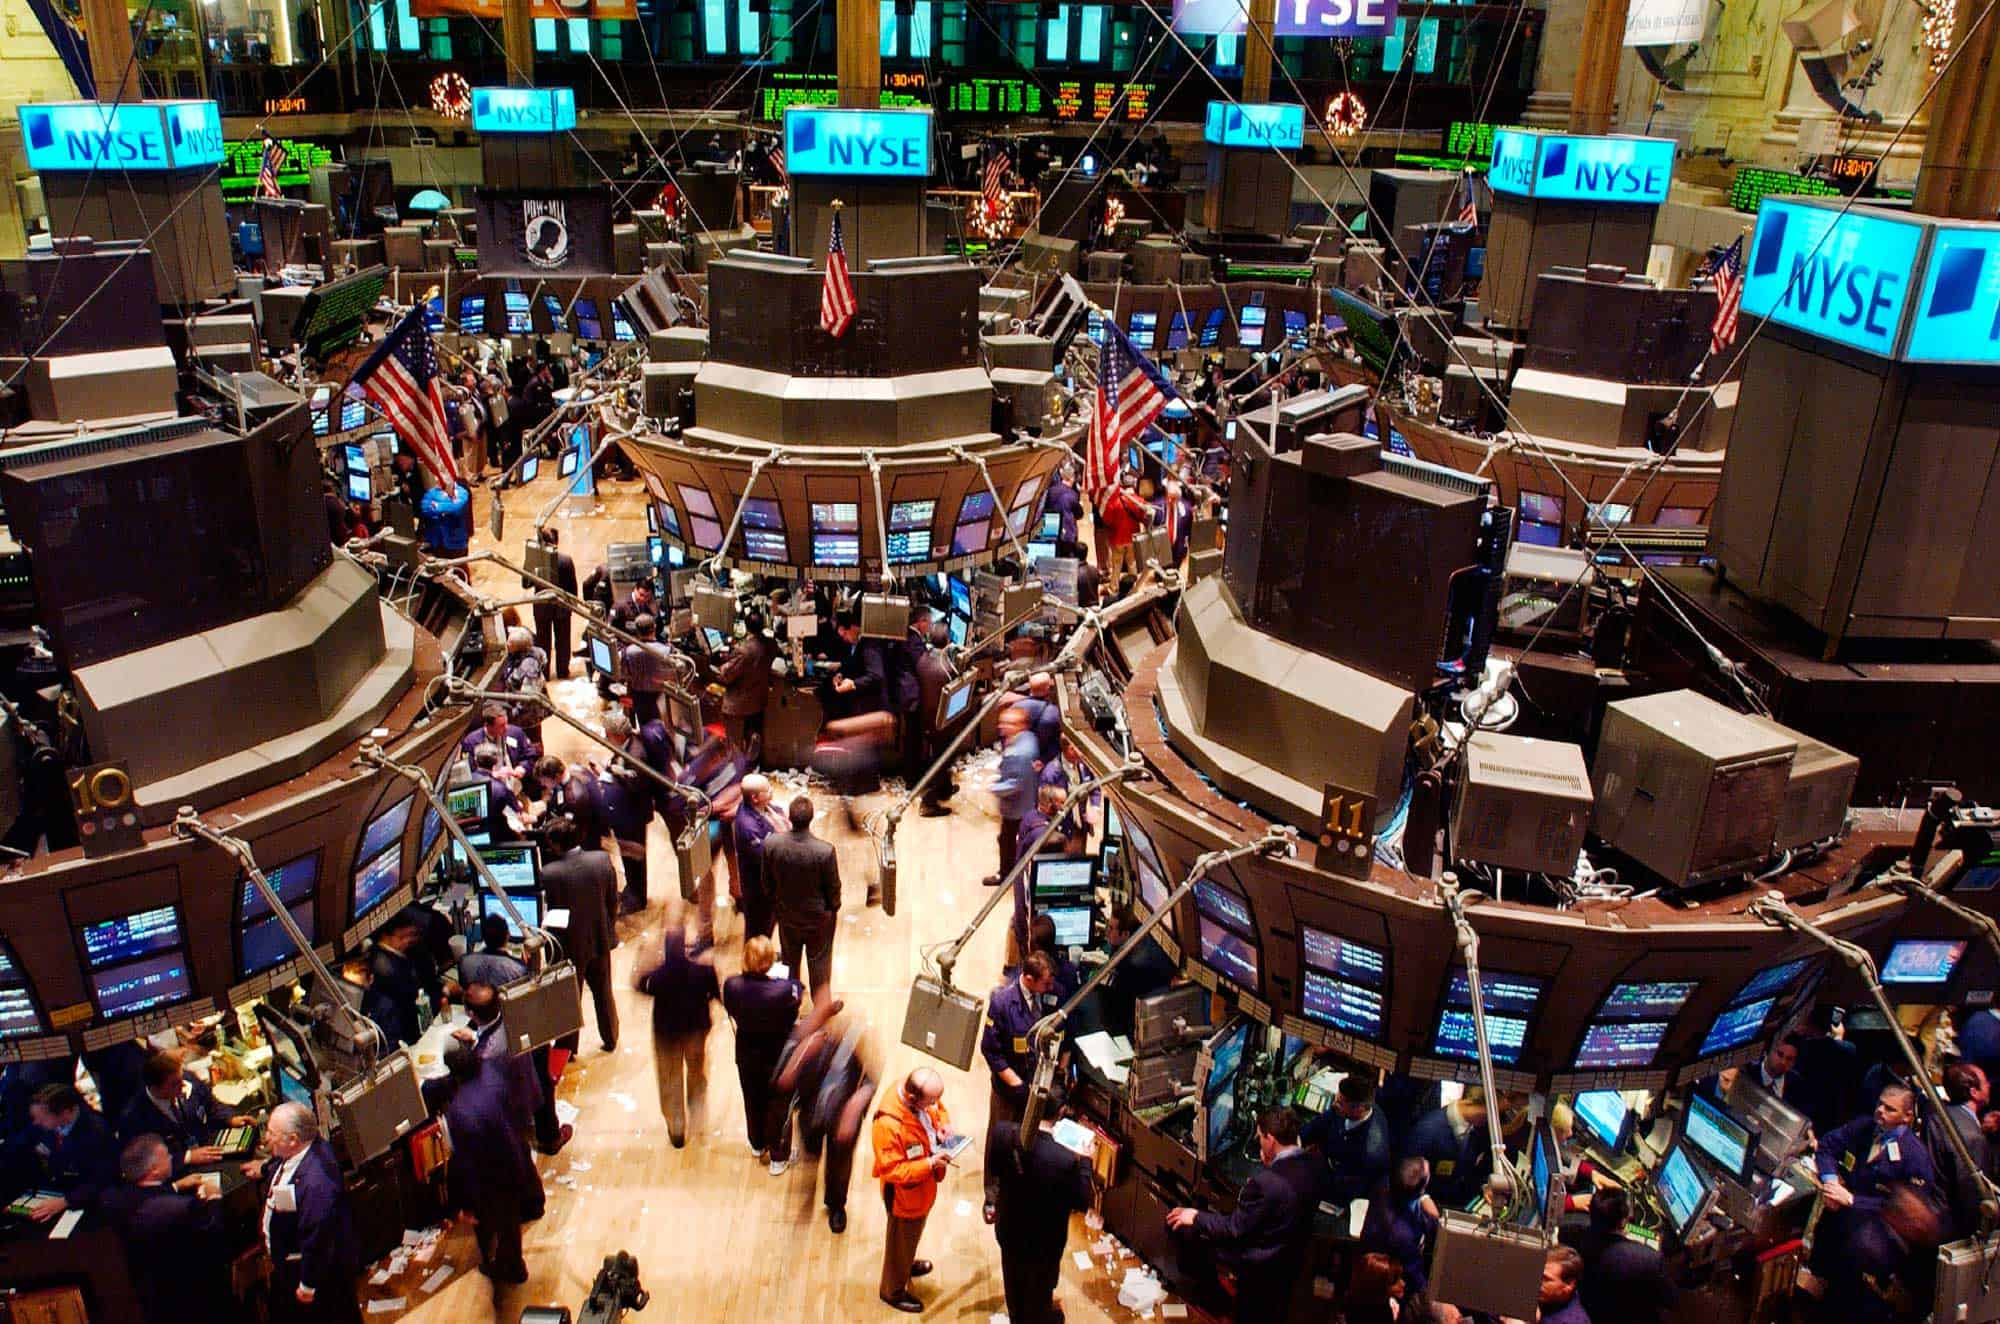 nyse-trading-floor